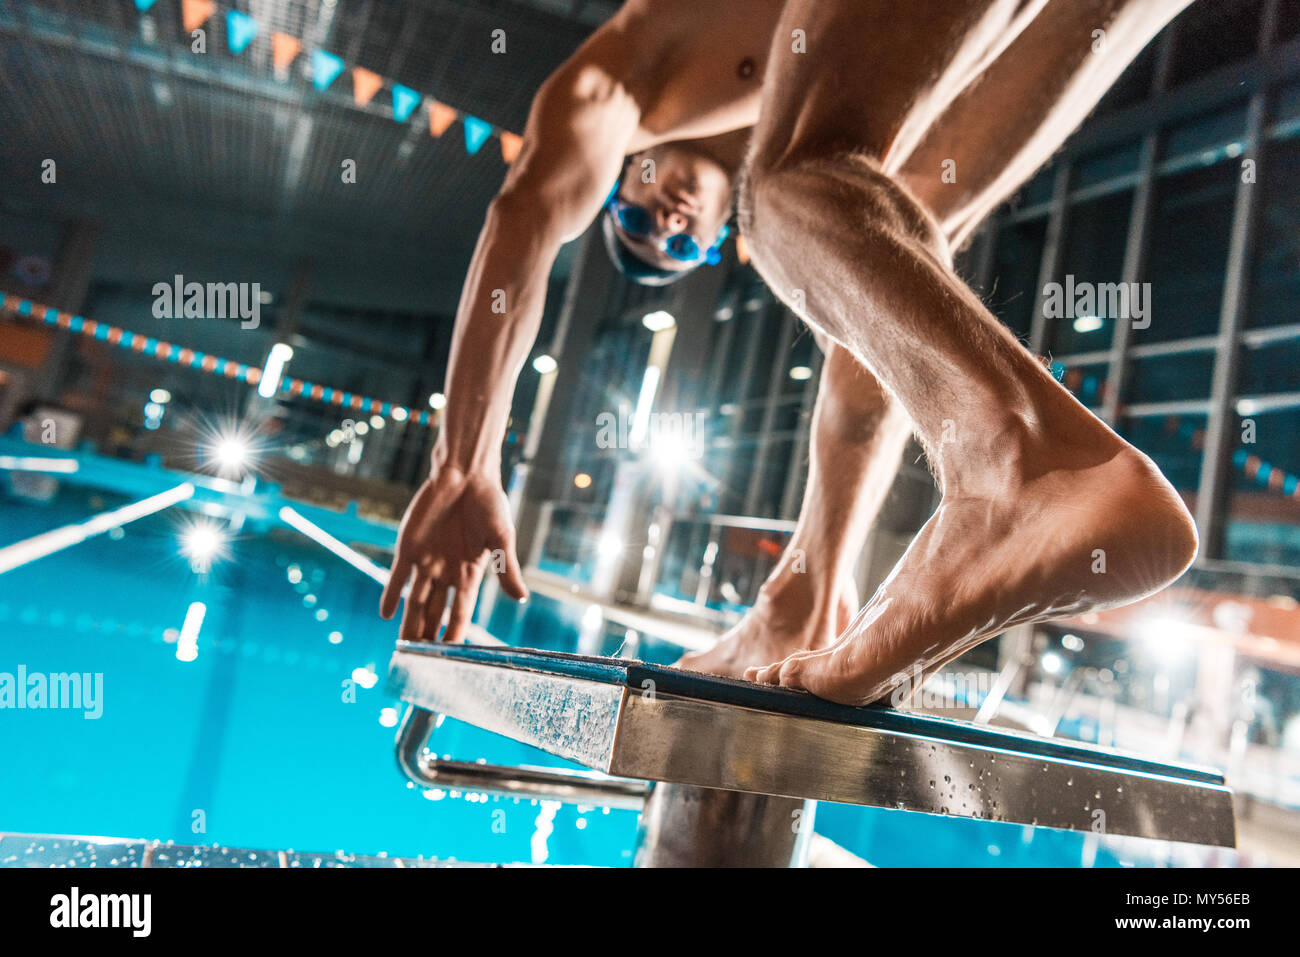 bottom view of swimmer jumping into competition swimming pool - Stock Image